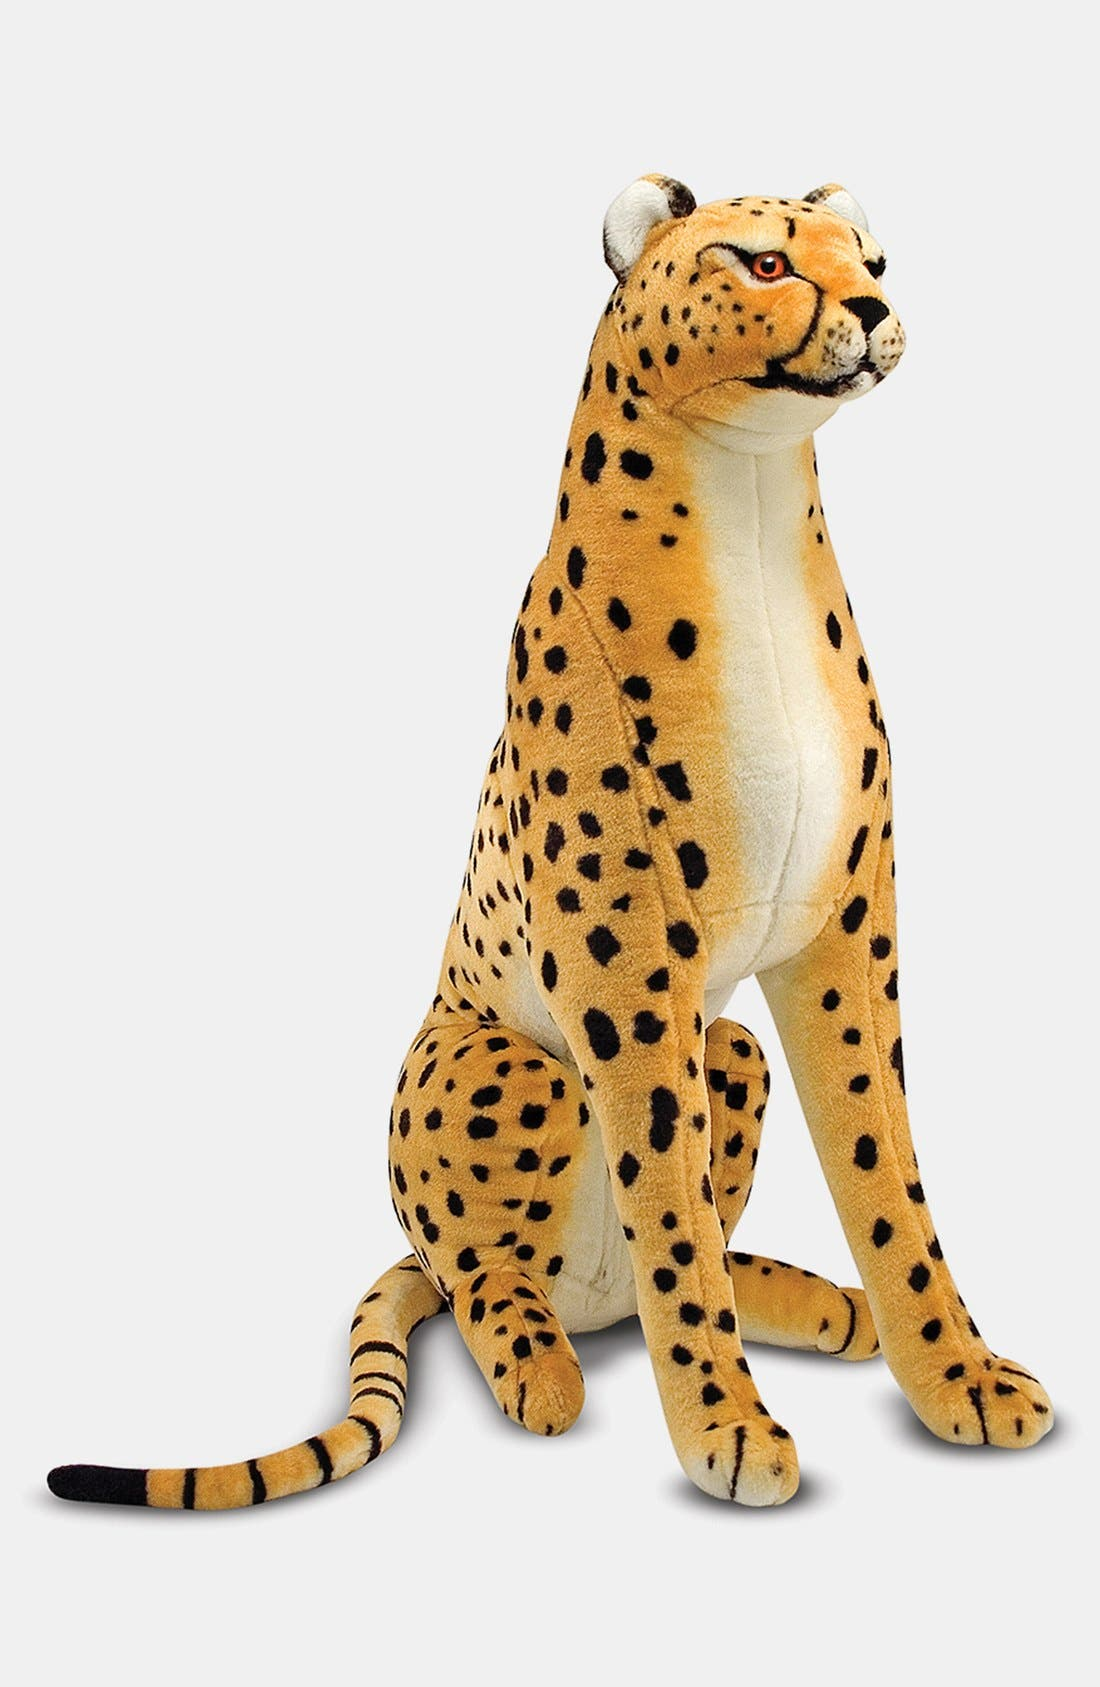 Plush Cheetah Stuffed Animal,                             Alternate thumbnail 2, color,                             Tan Multi